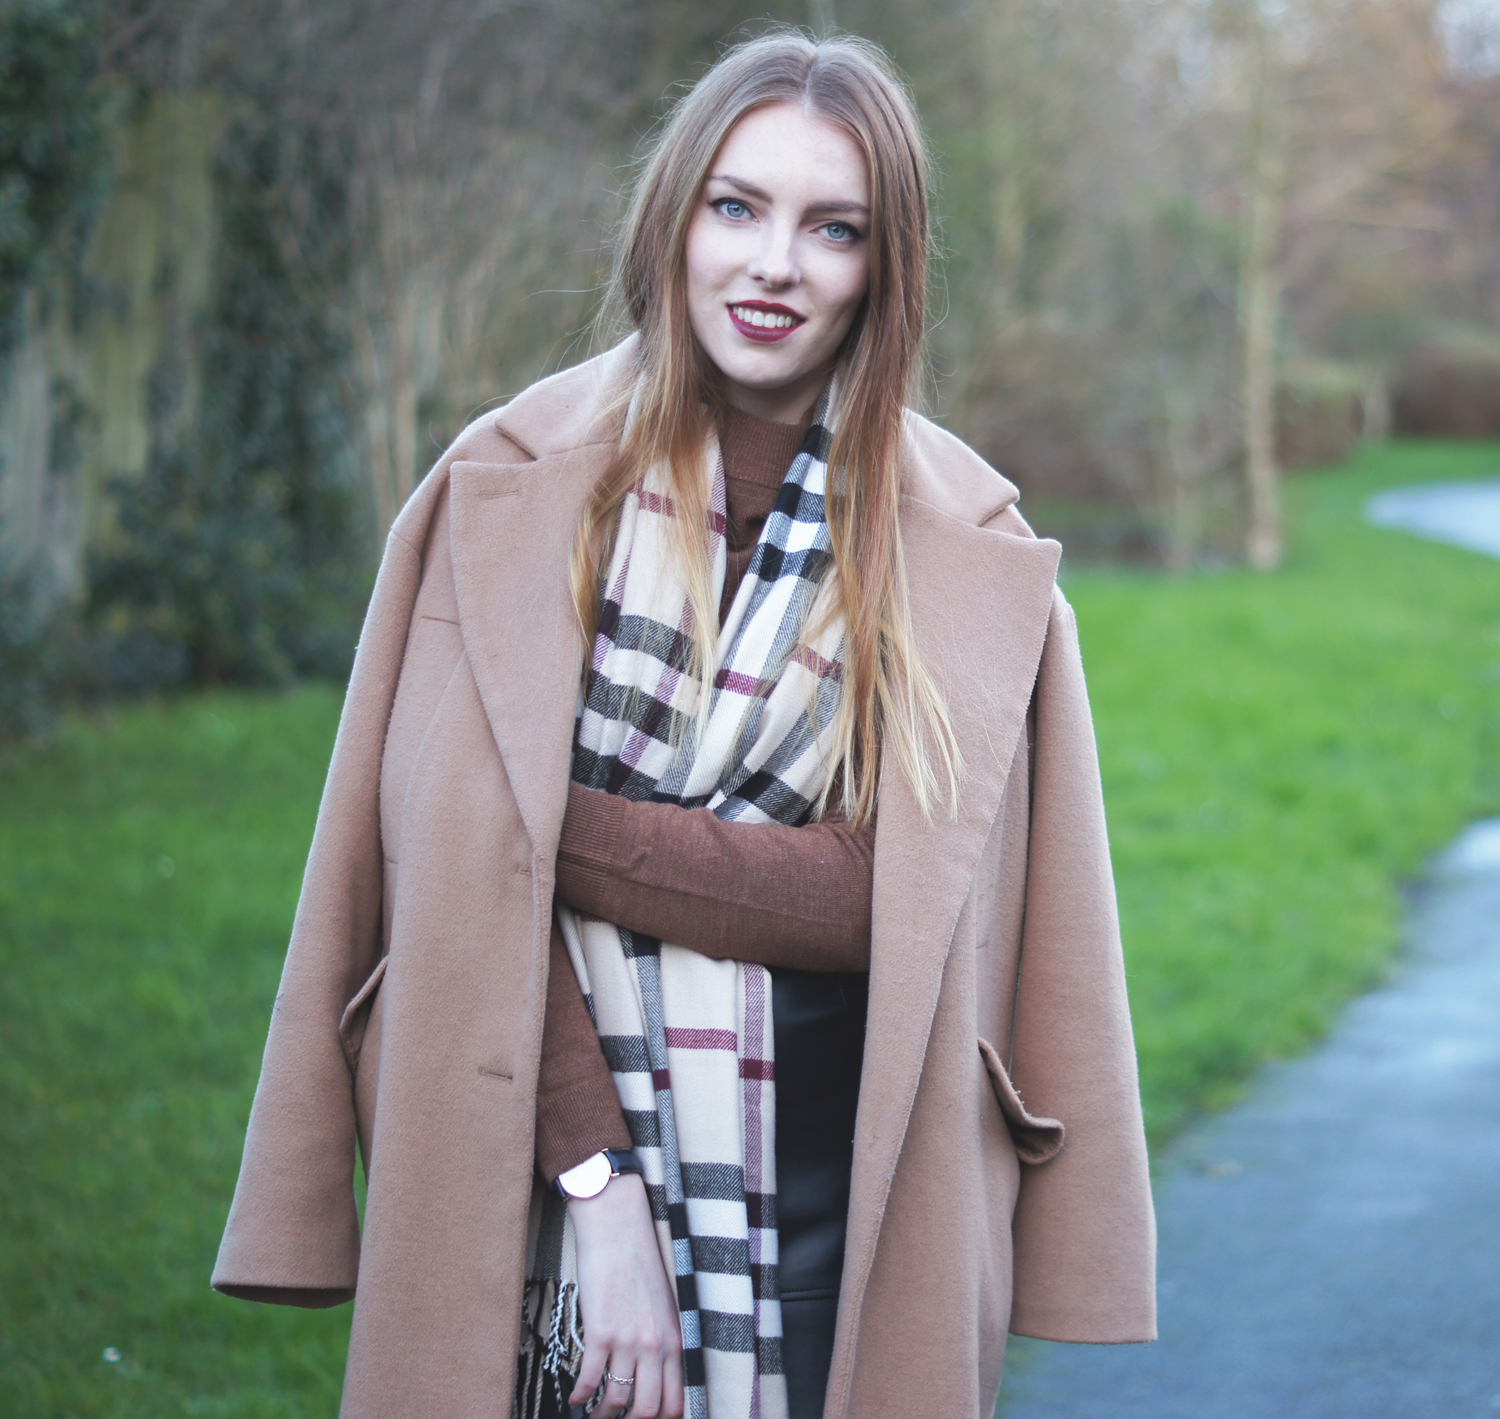 burberry dupe scarf